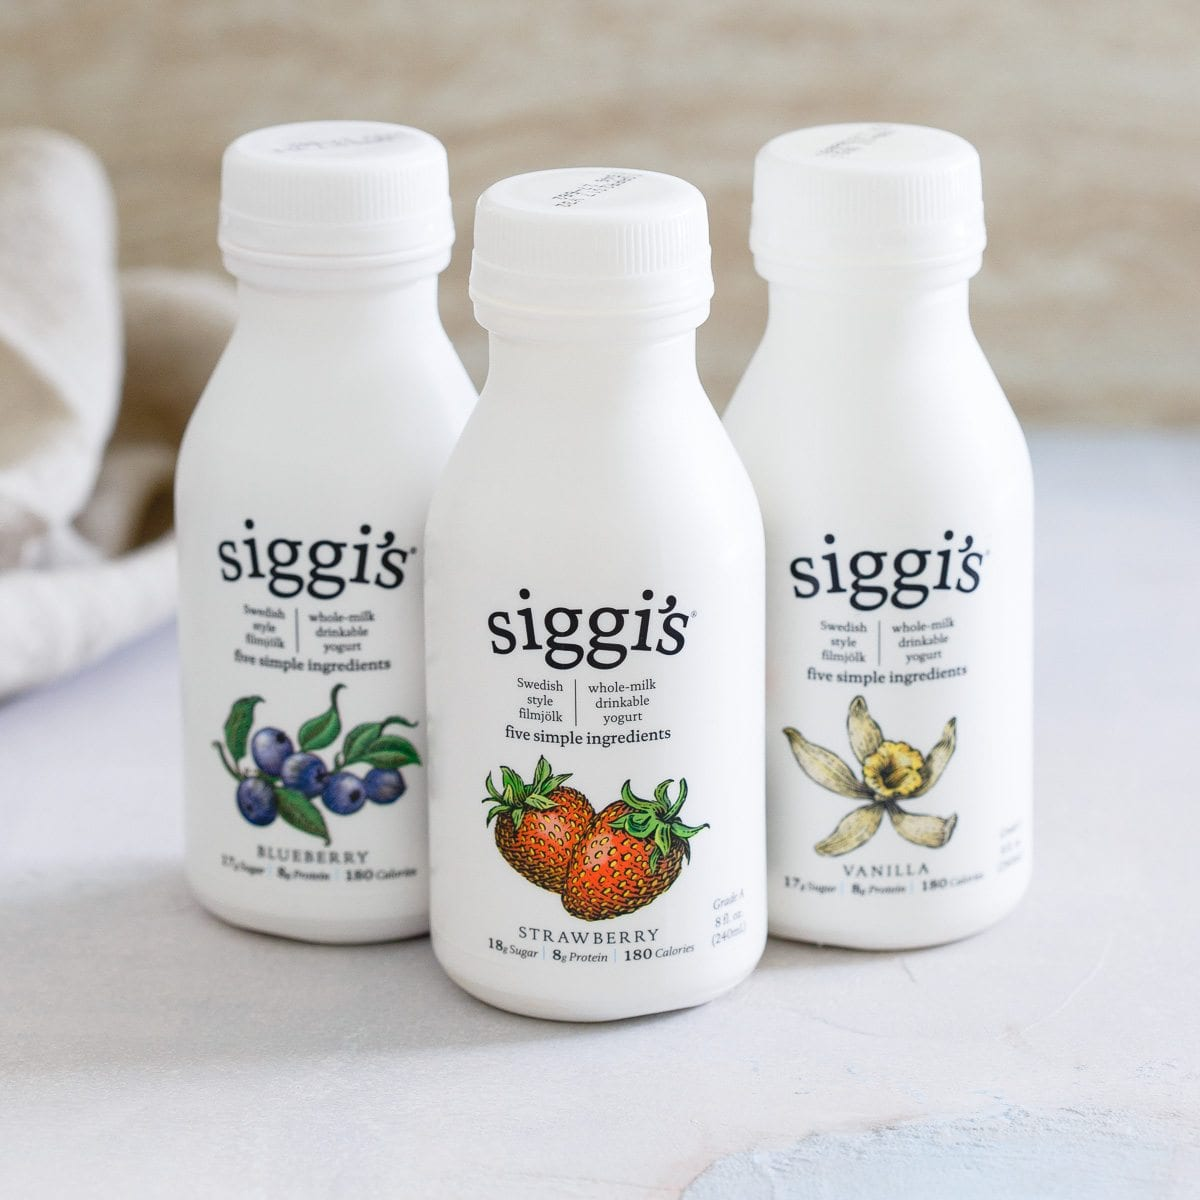 siggis, siggis dairy, toronto foodie, grocery, us products, dairy